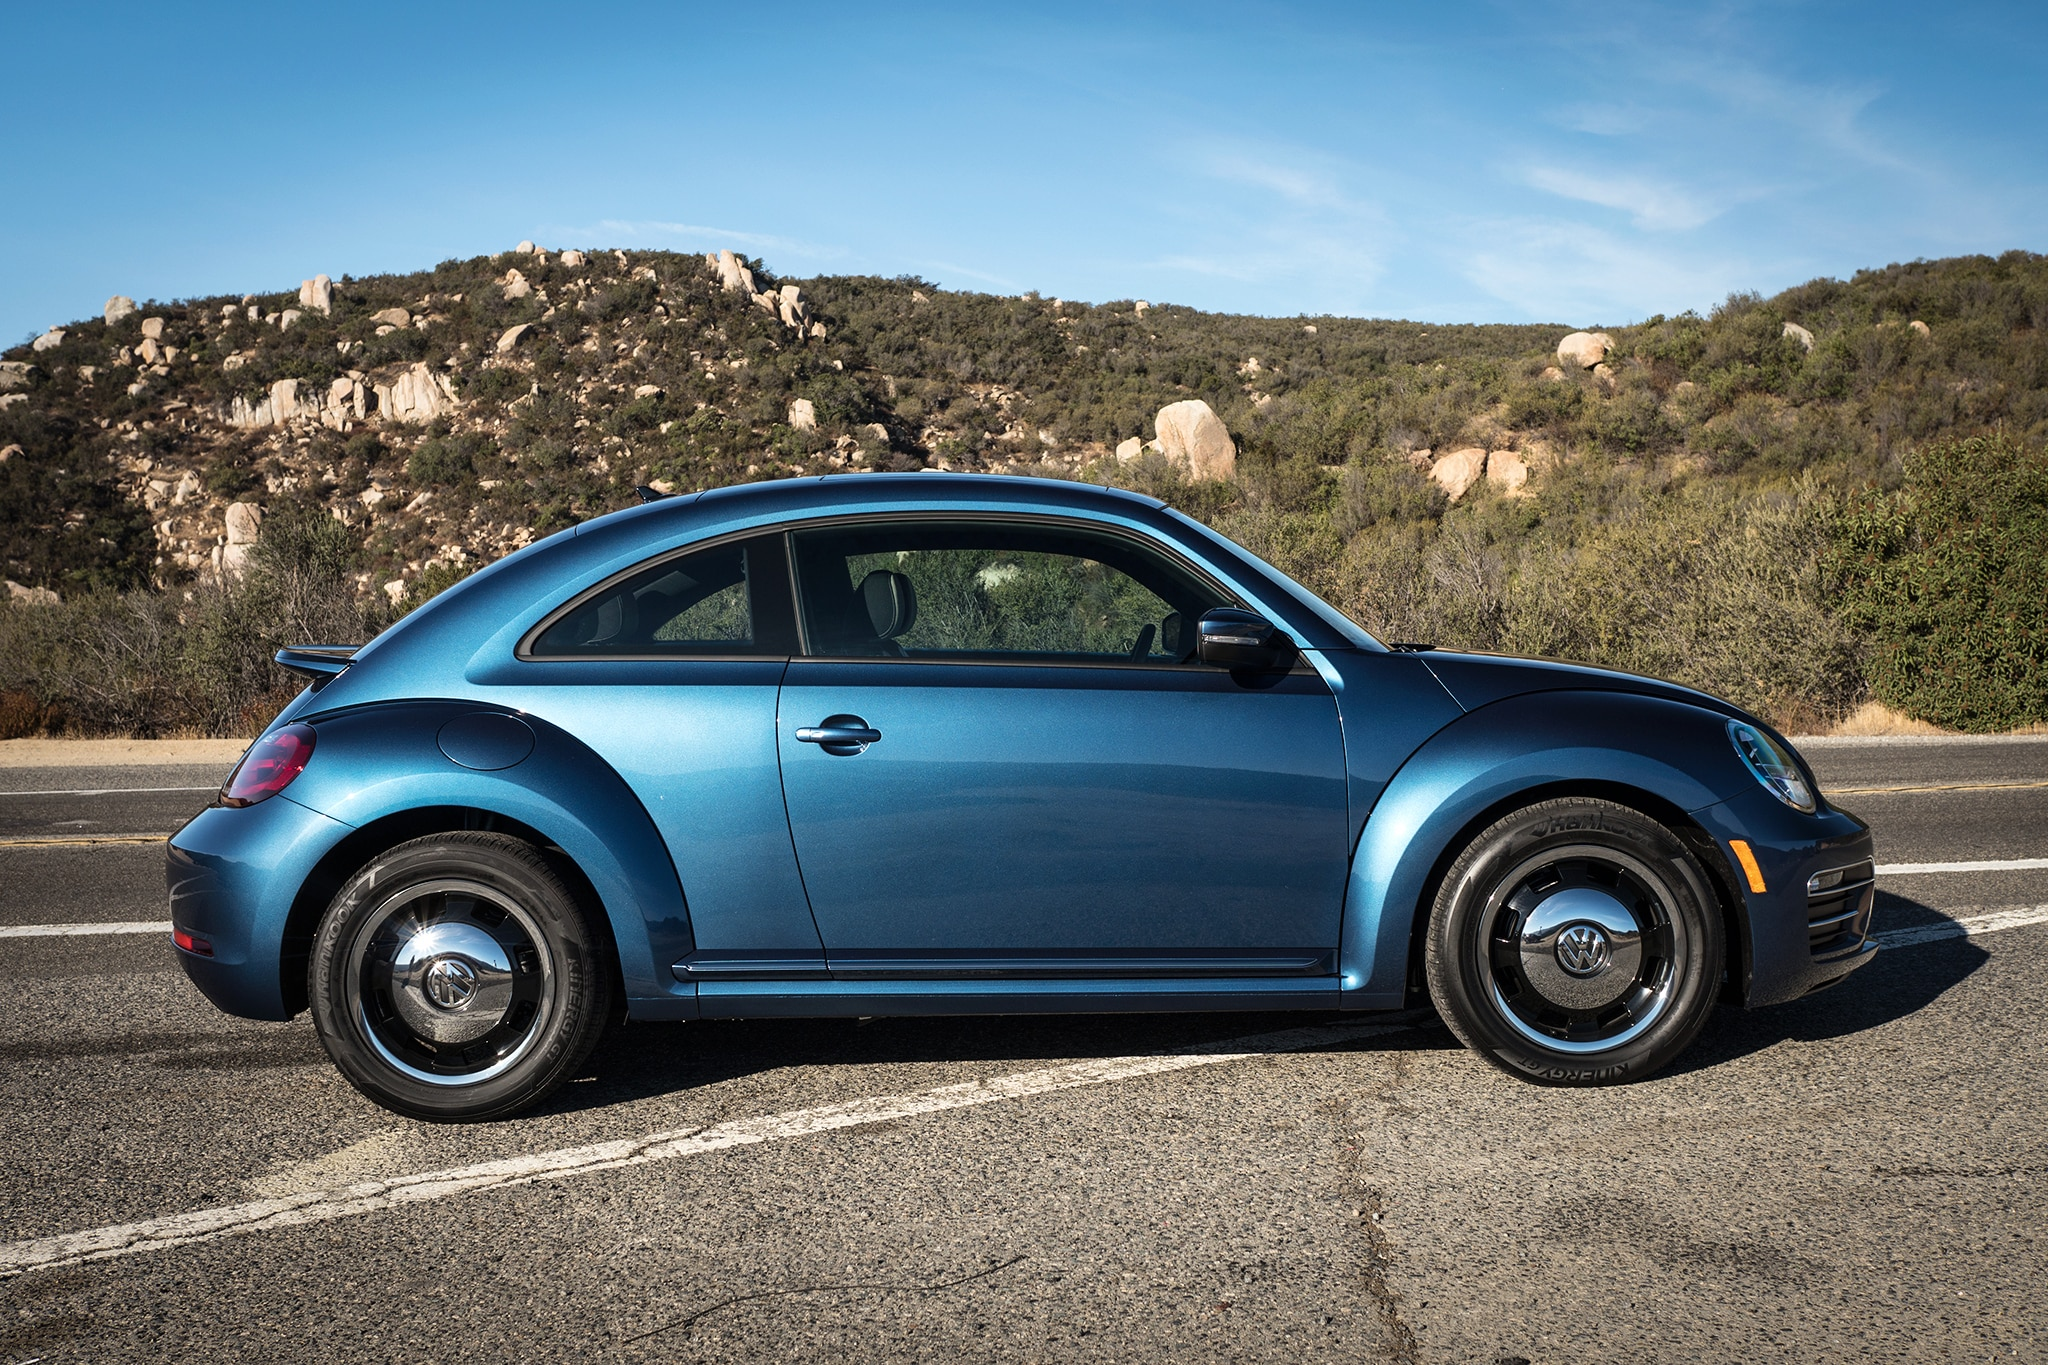 A Day Trip To Lake Elsinore With 2018 Volkswagen Beetle